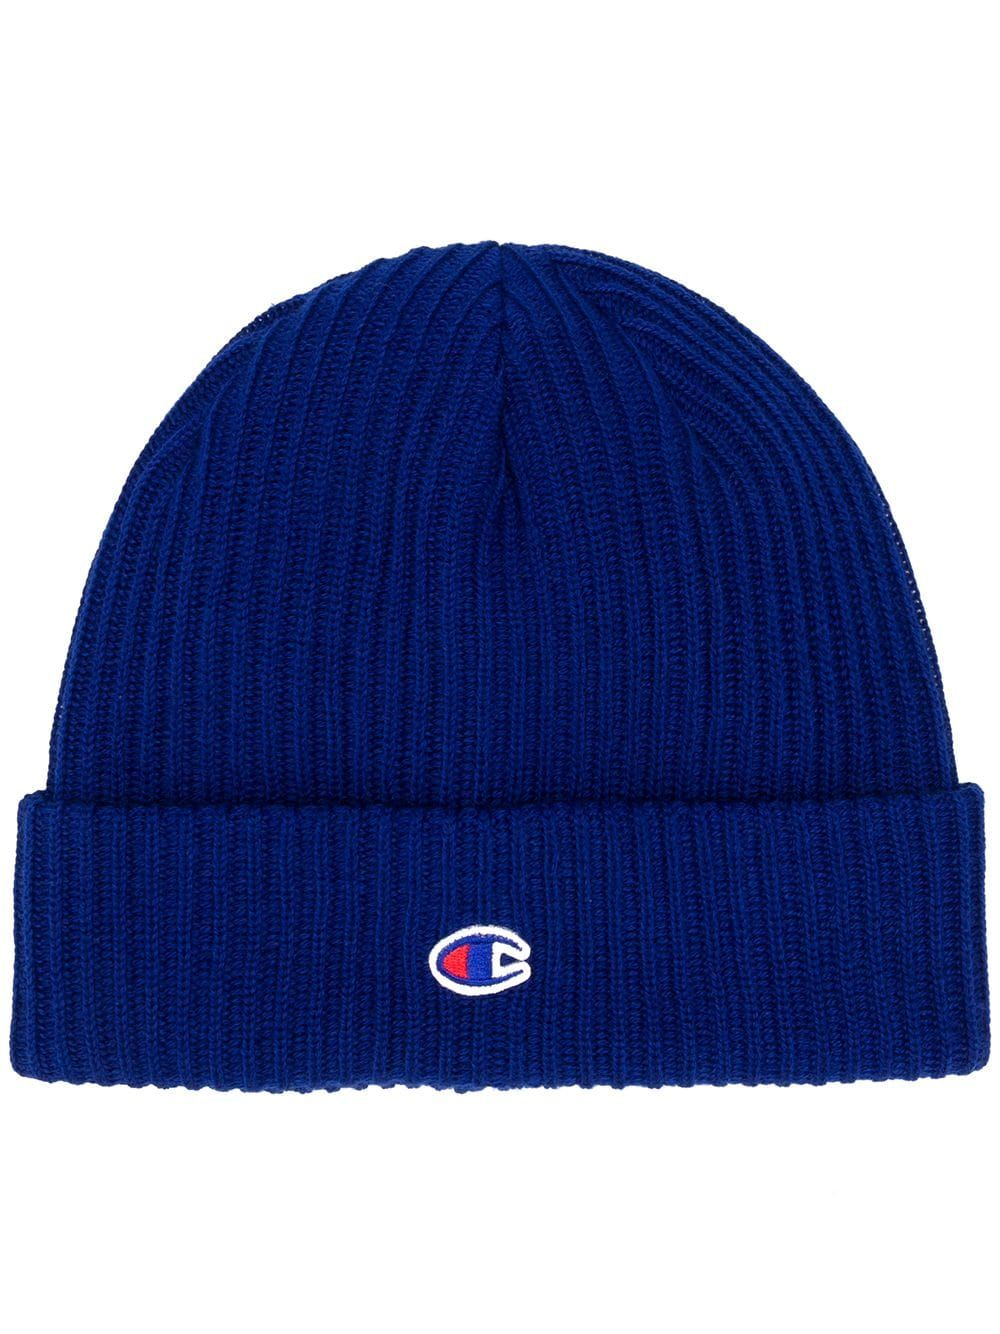 9251814aa5a CHAMPION CHAMPION LOGO KNIT BEANIE - BLUE.  champion